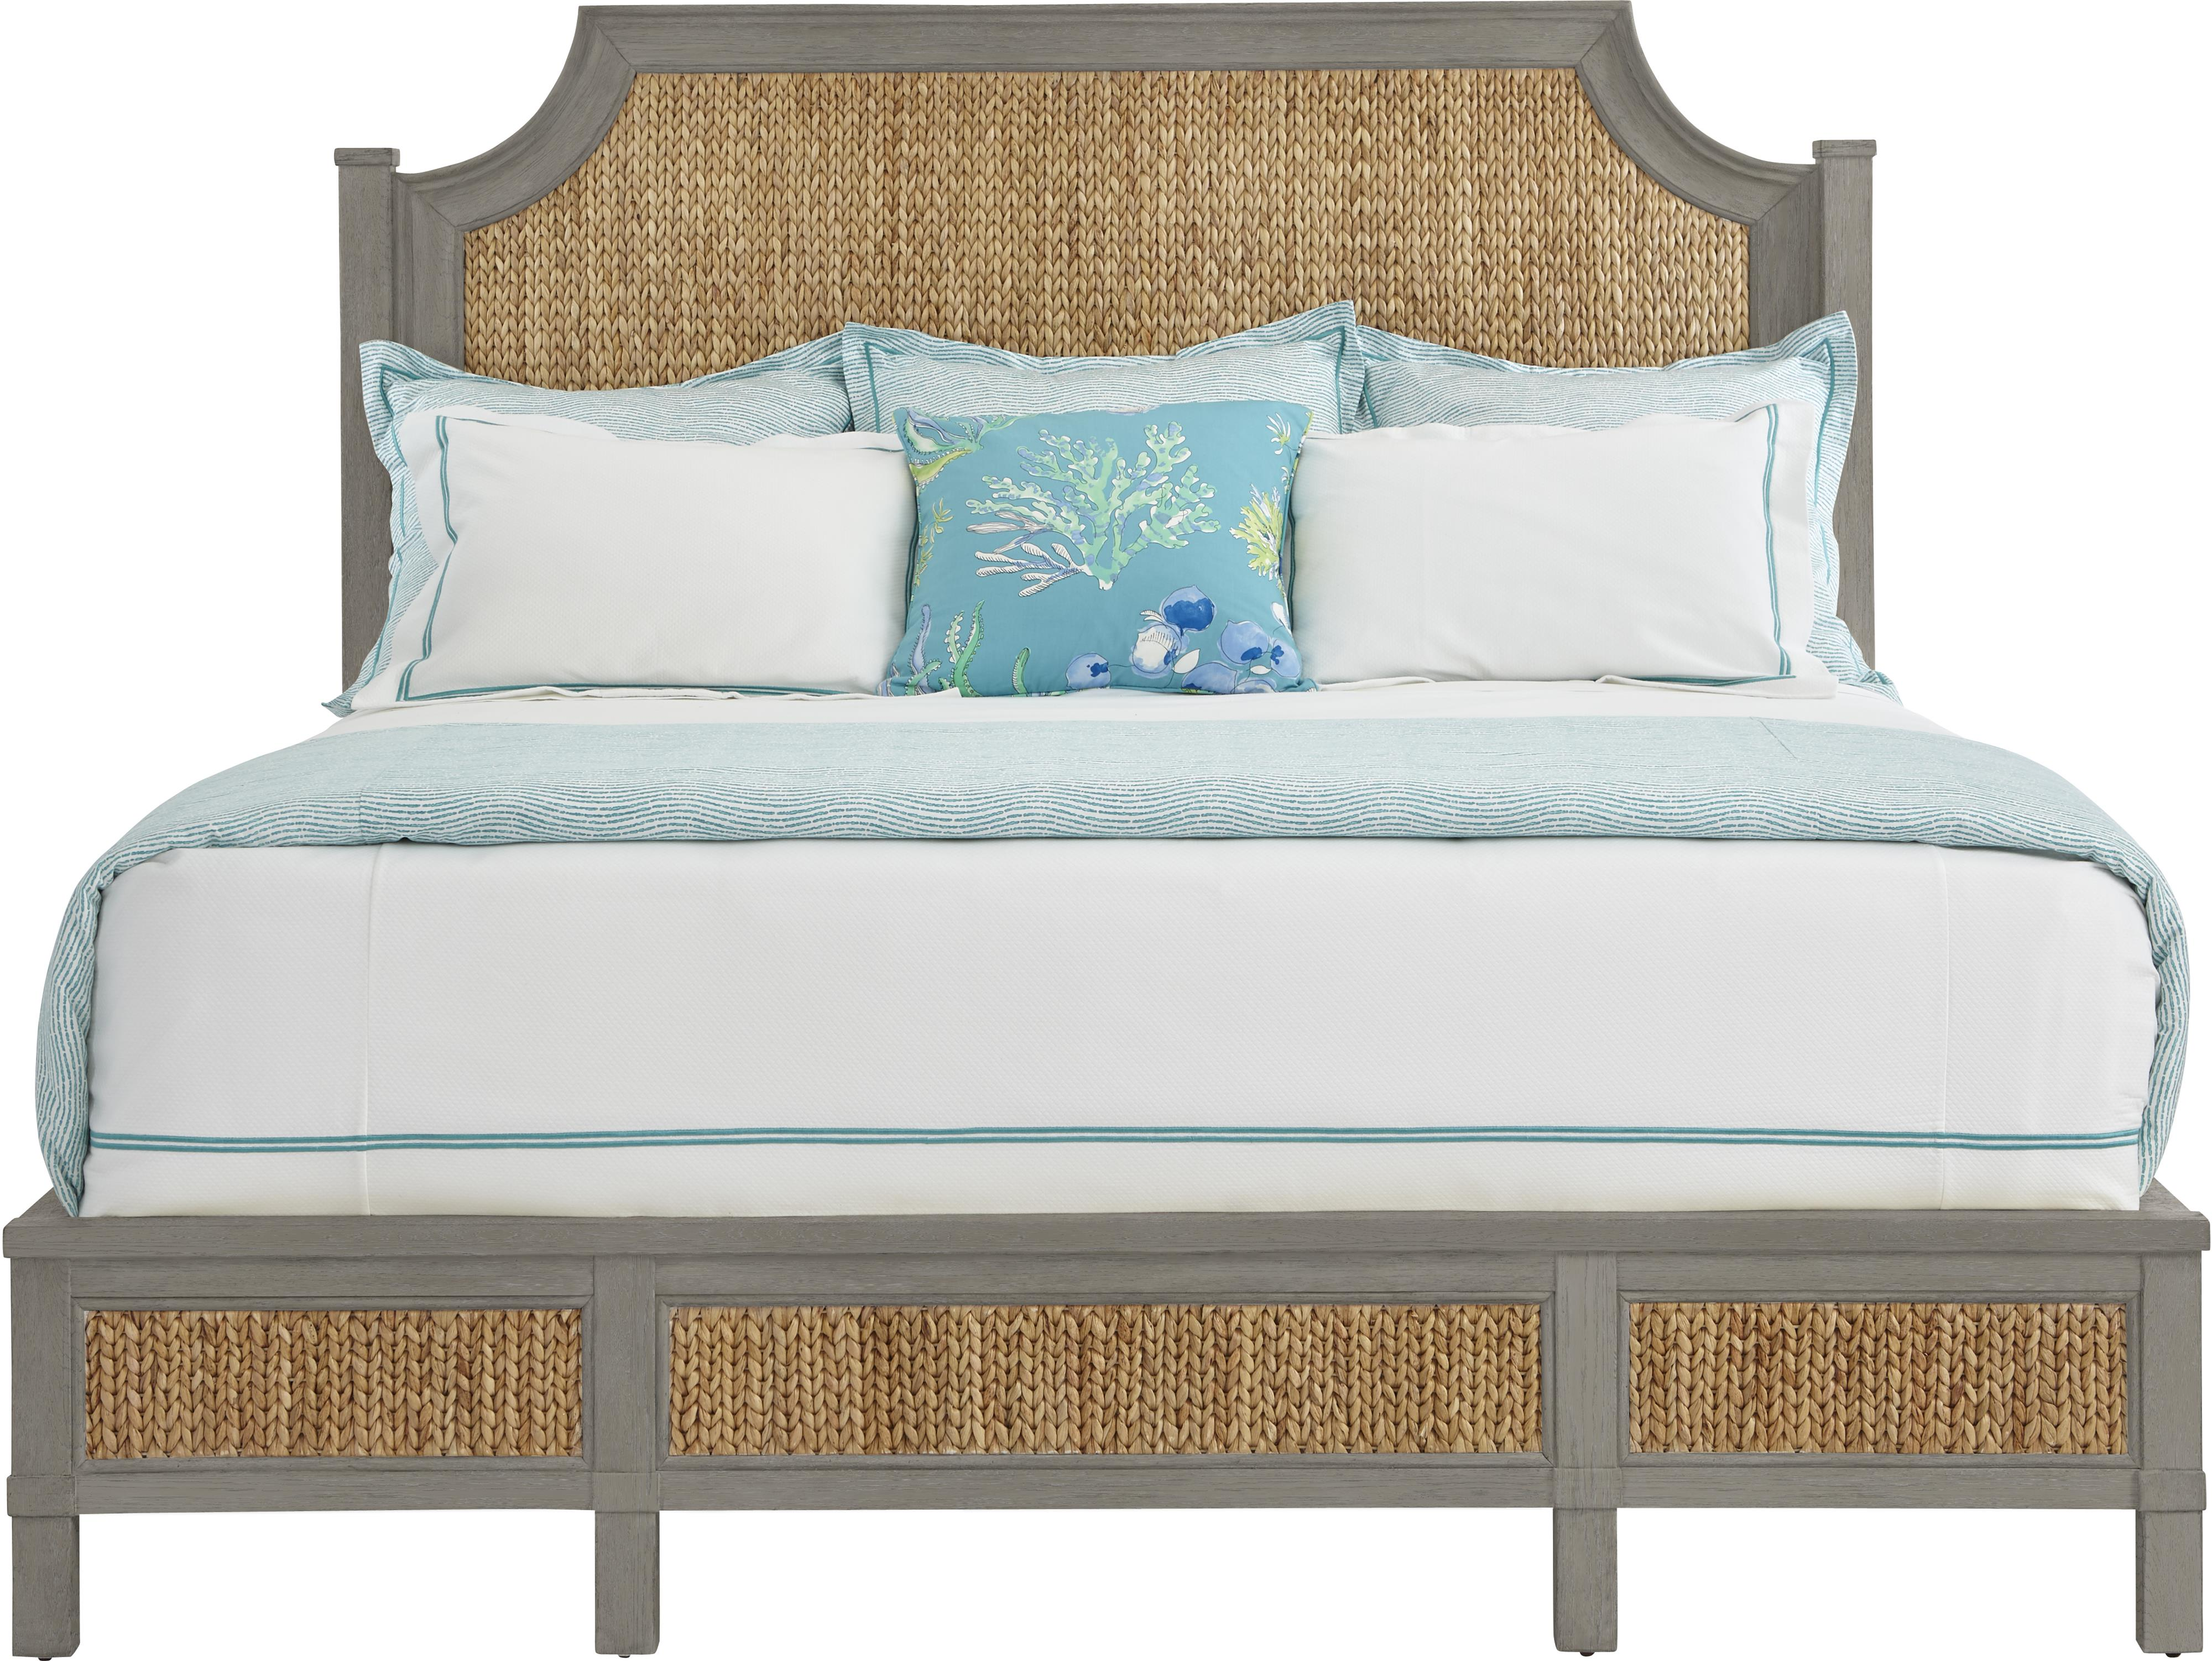 Stanley Furniture Coastal Living Resort California King Water Meadow Woven Bed - Item Number: 062-C3-49